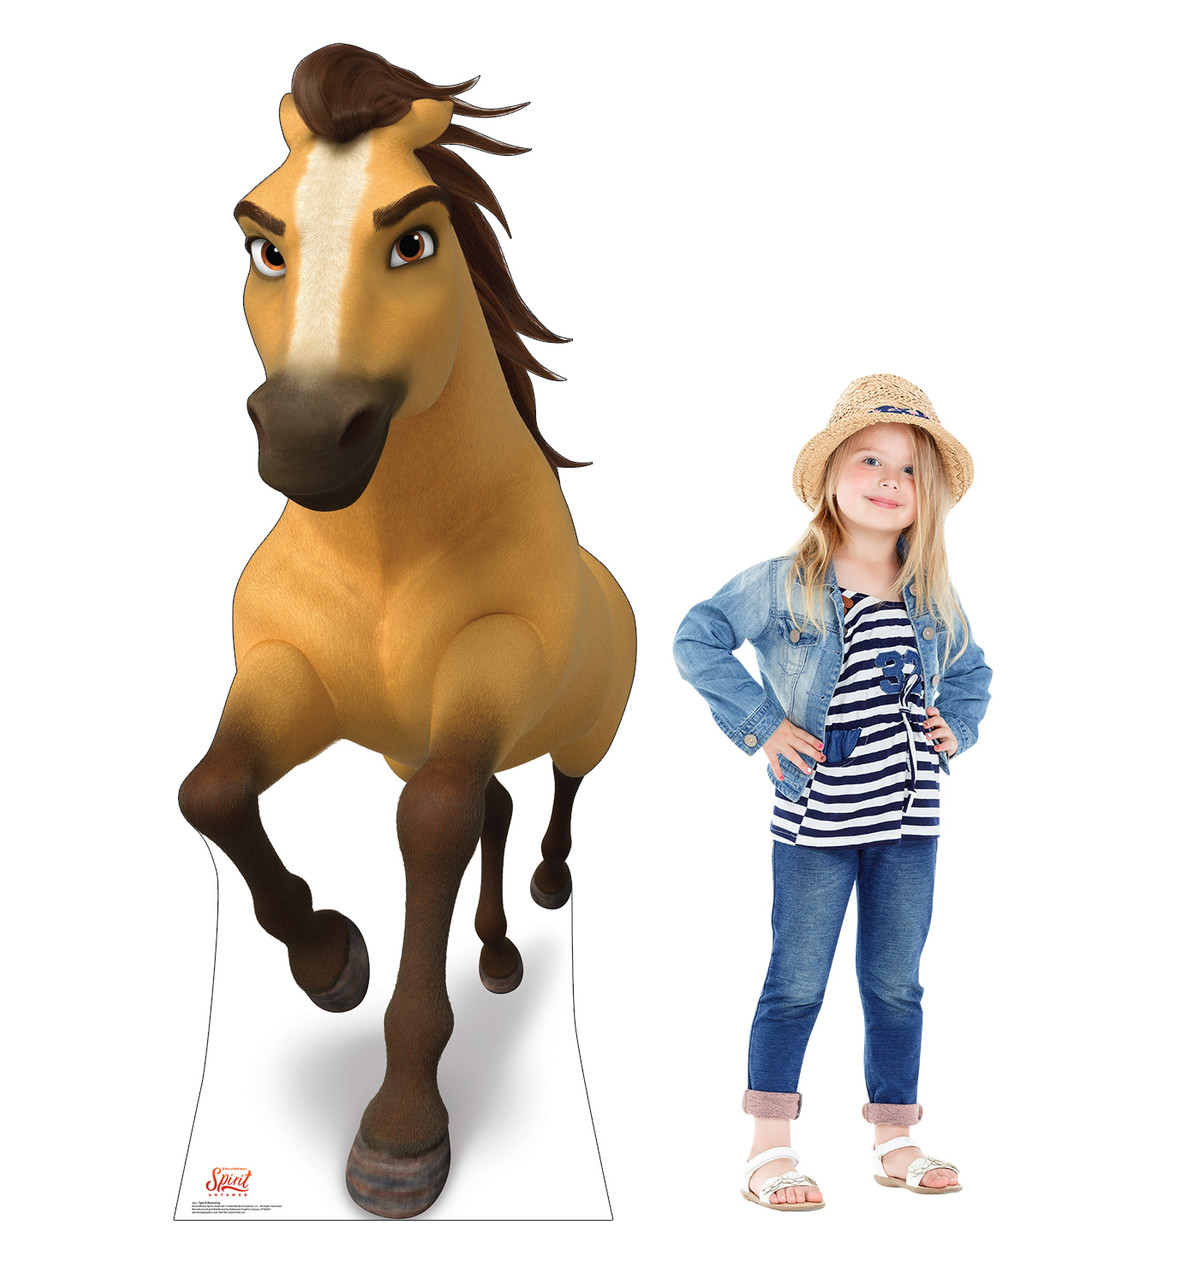 Life-size cardboard standee of Spirit Running with model.